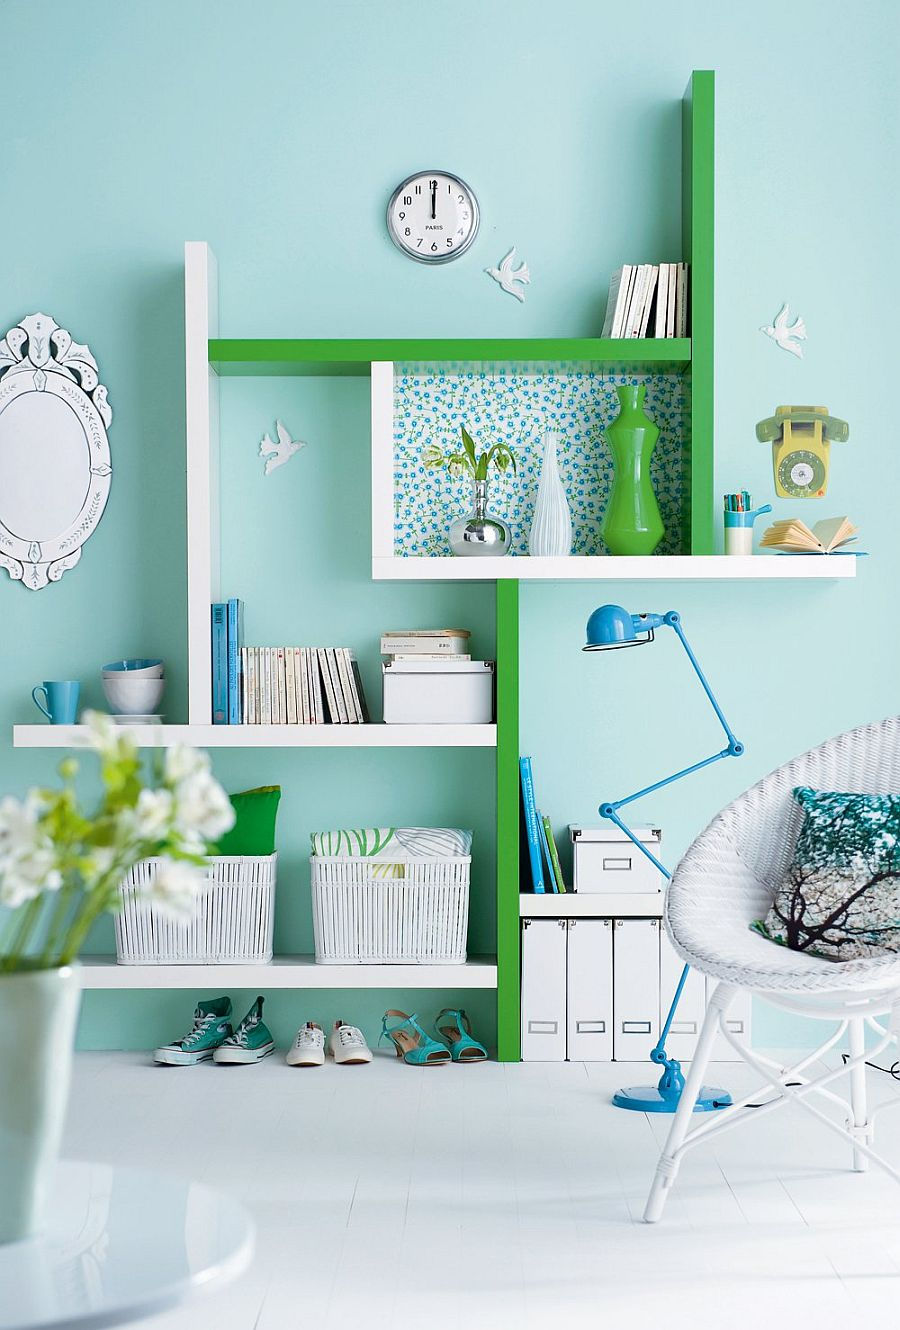 Shelving brings pops of green to the smart home office in blue